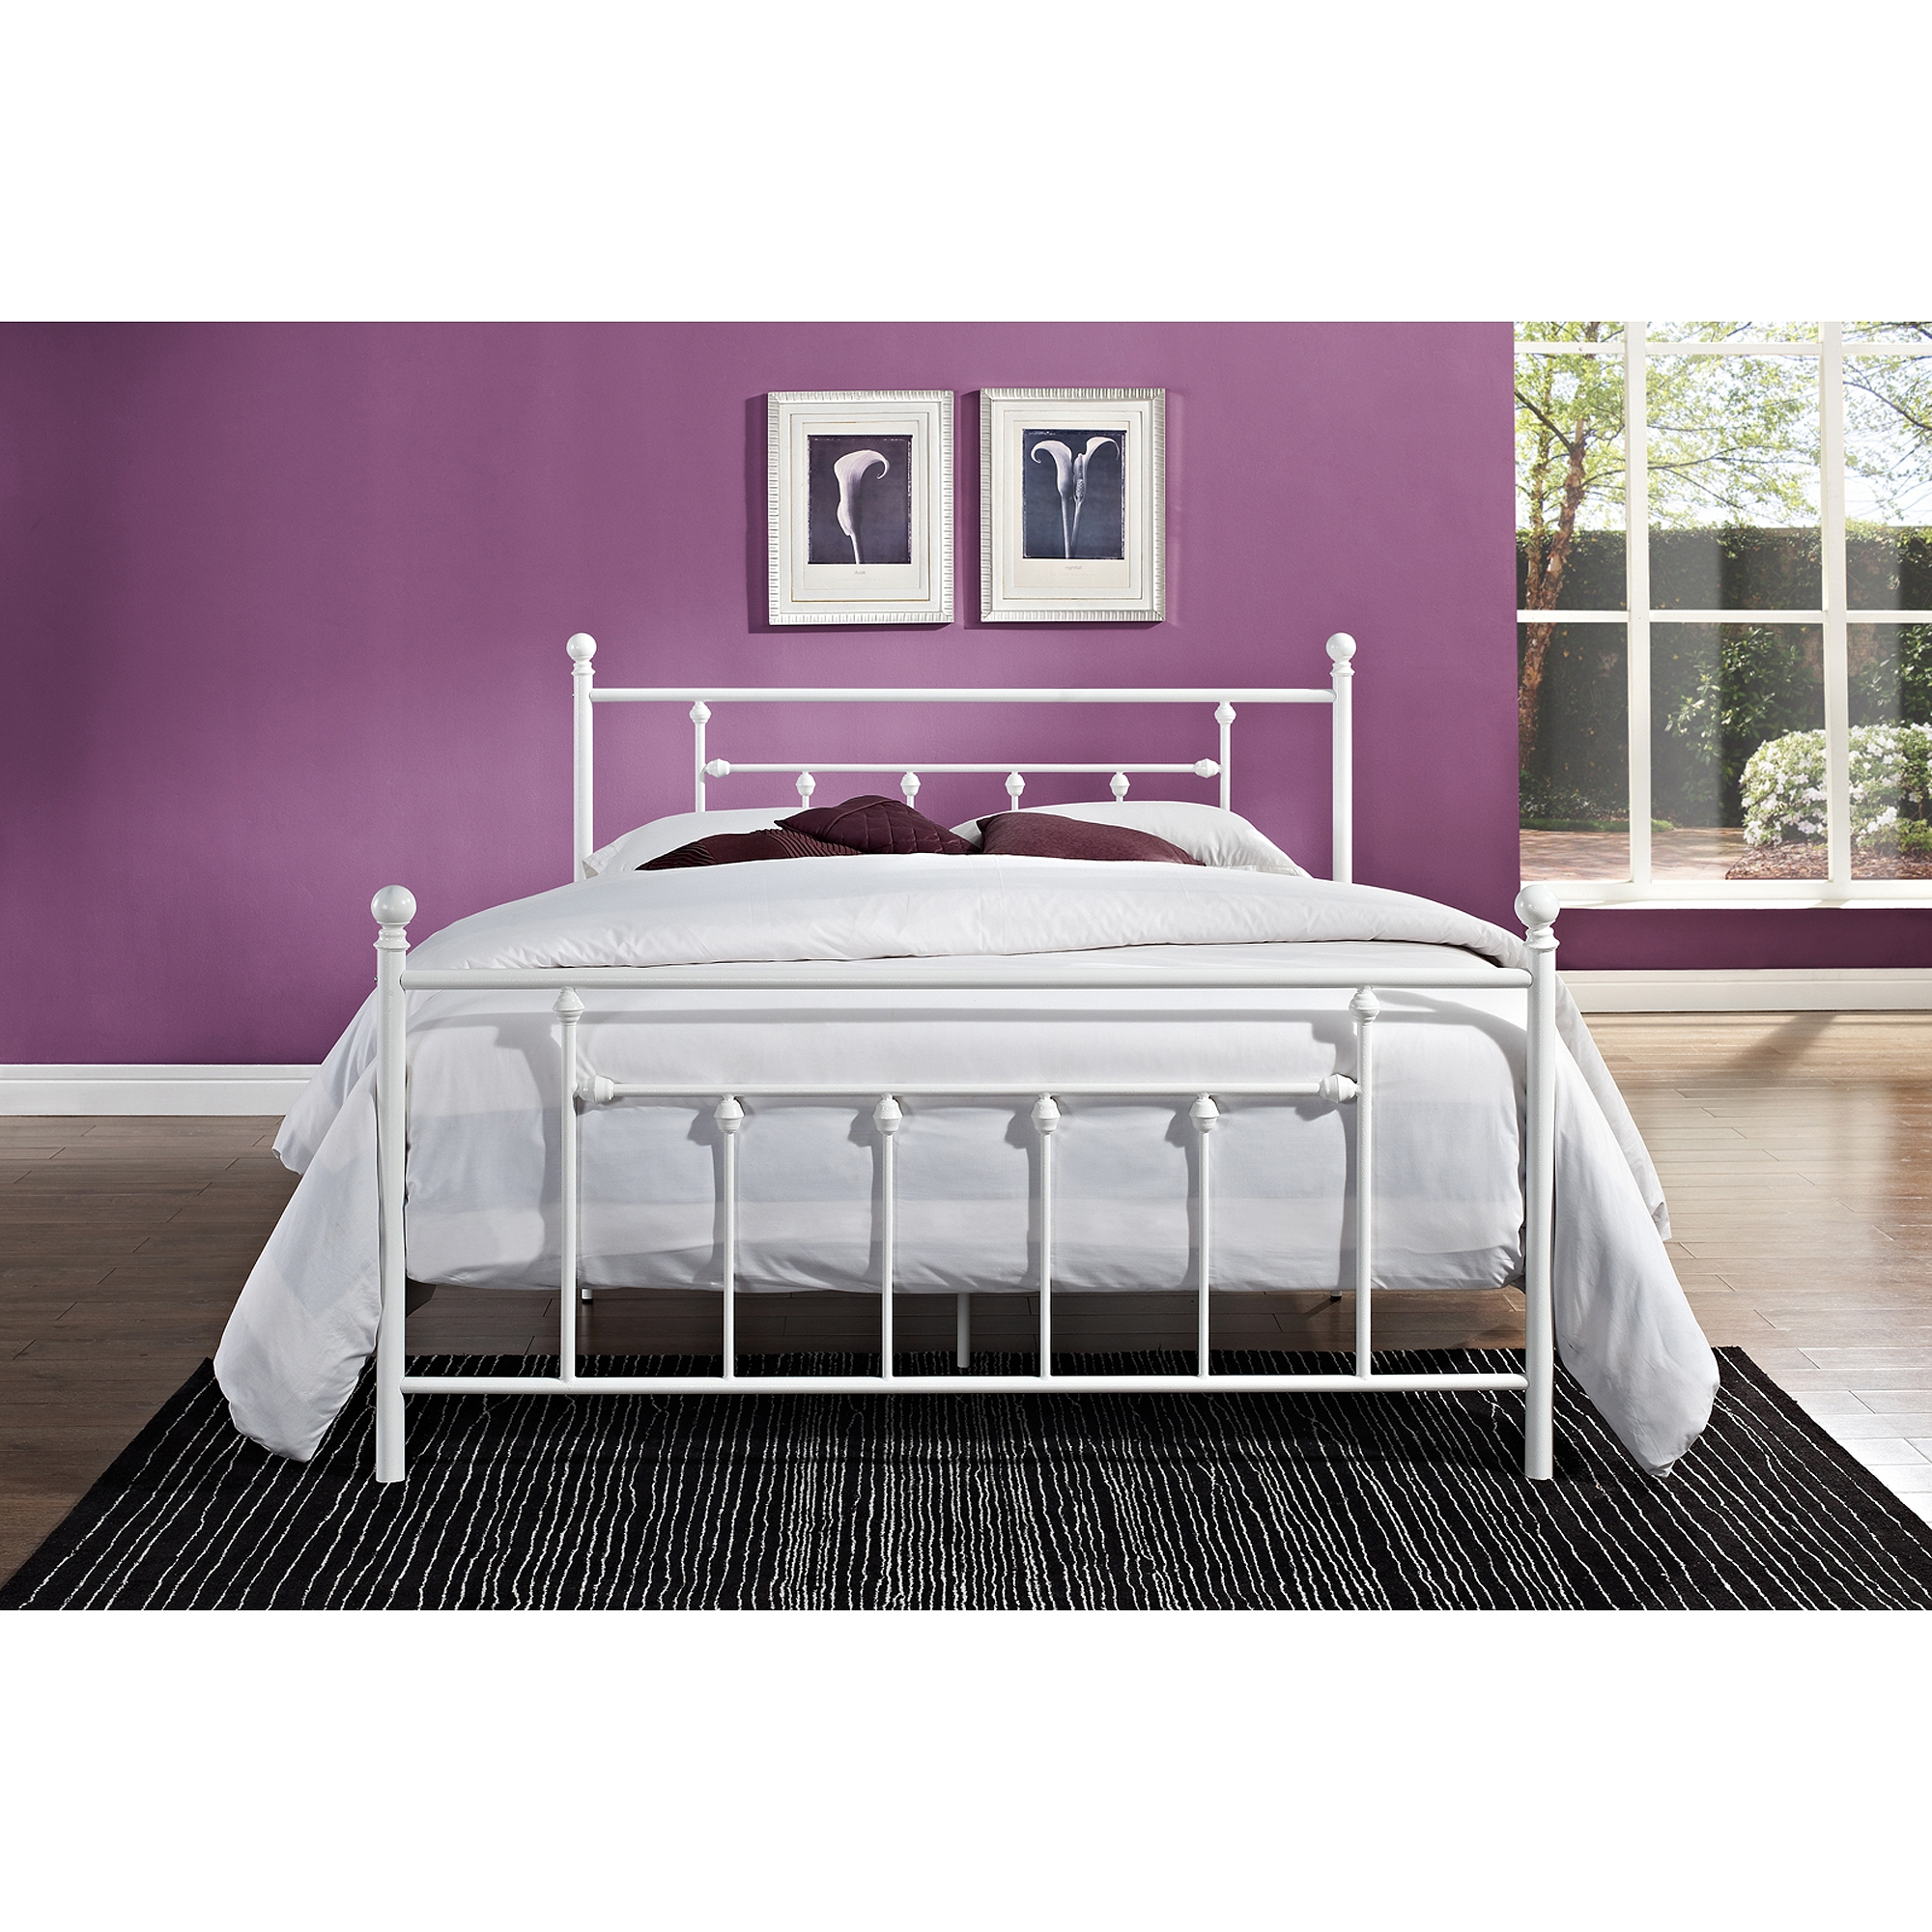 White Iron Bed Frame Full Size